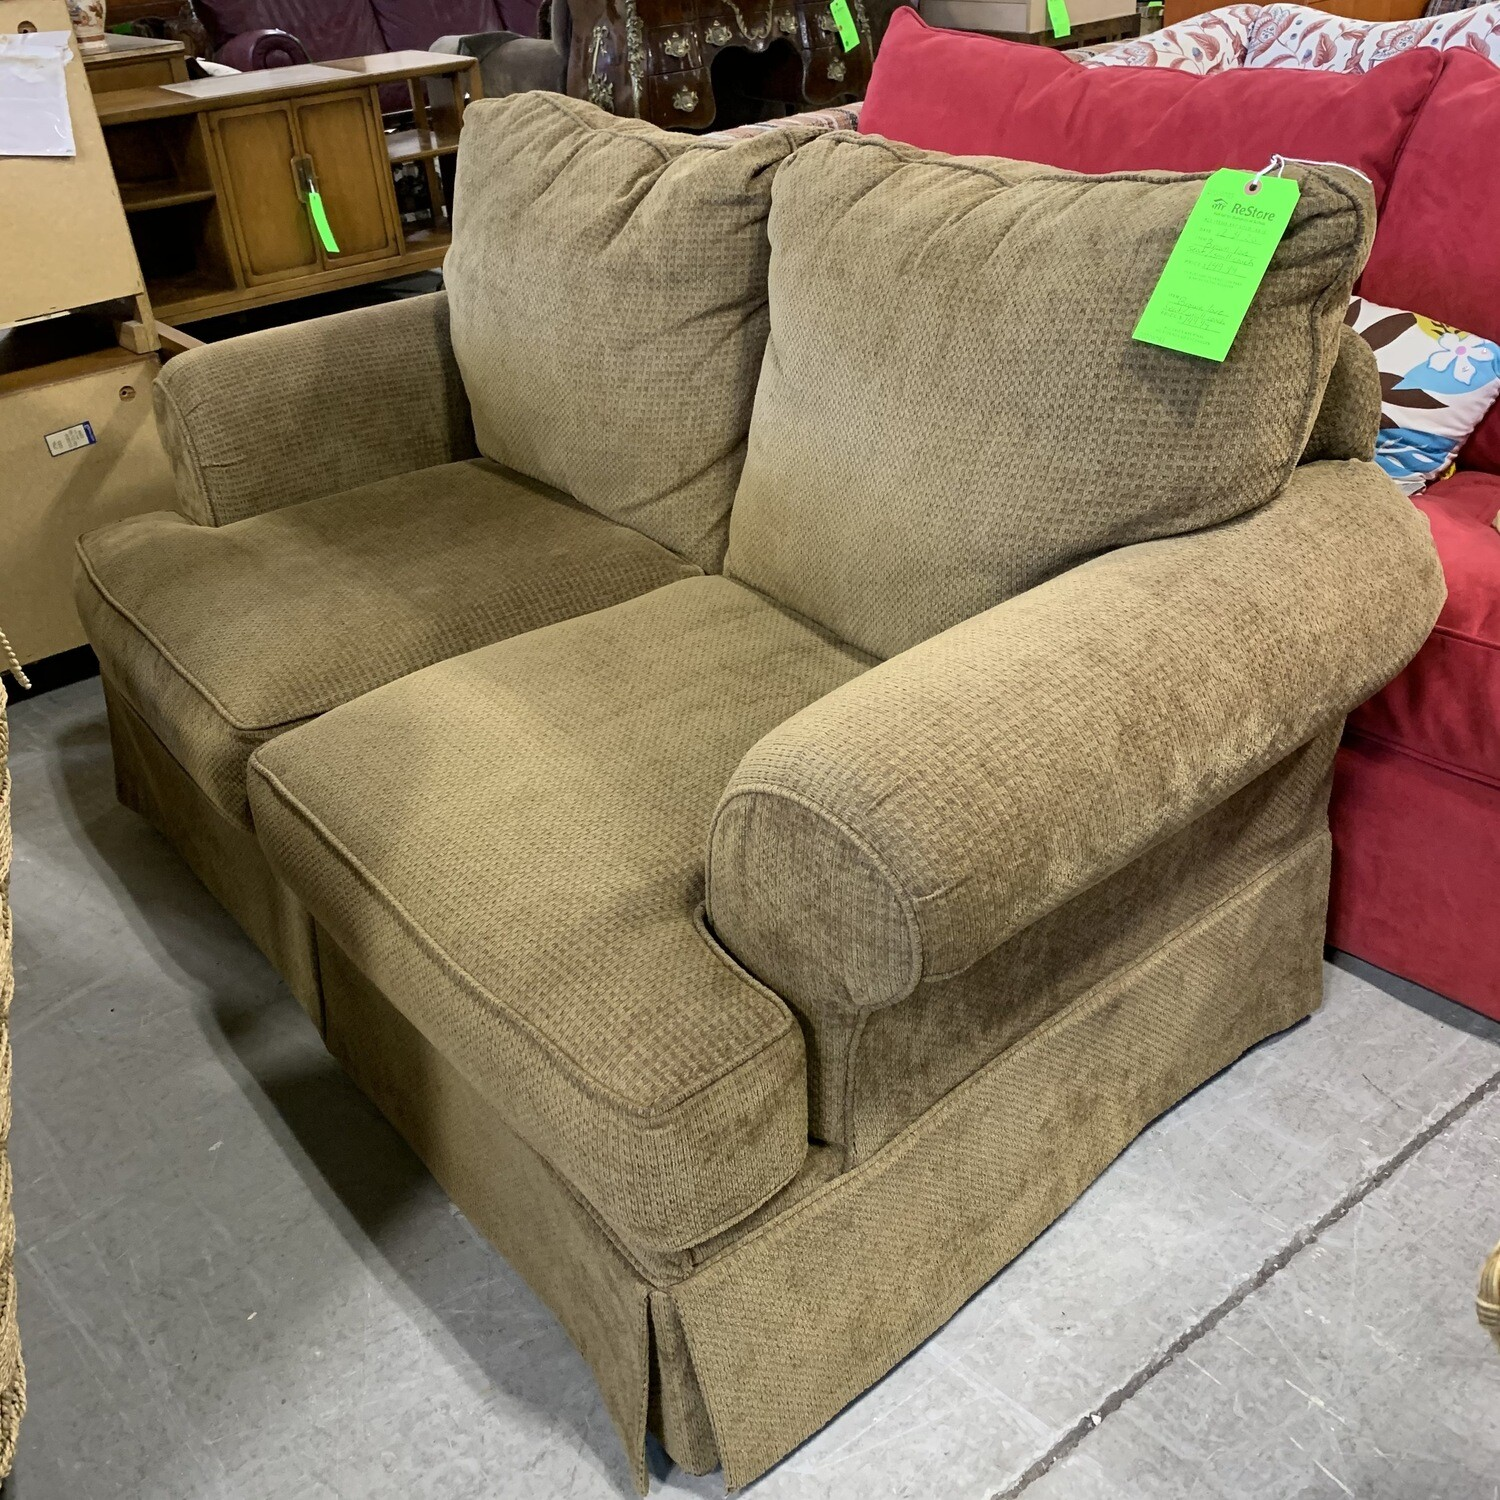 Brown Love Seat Small Couch